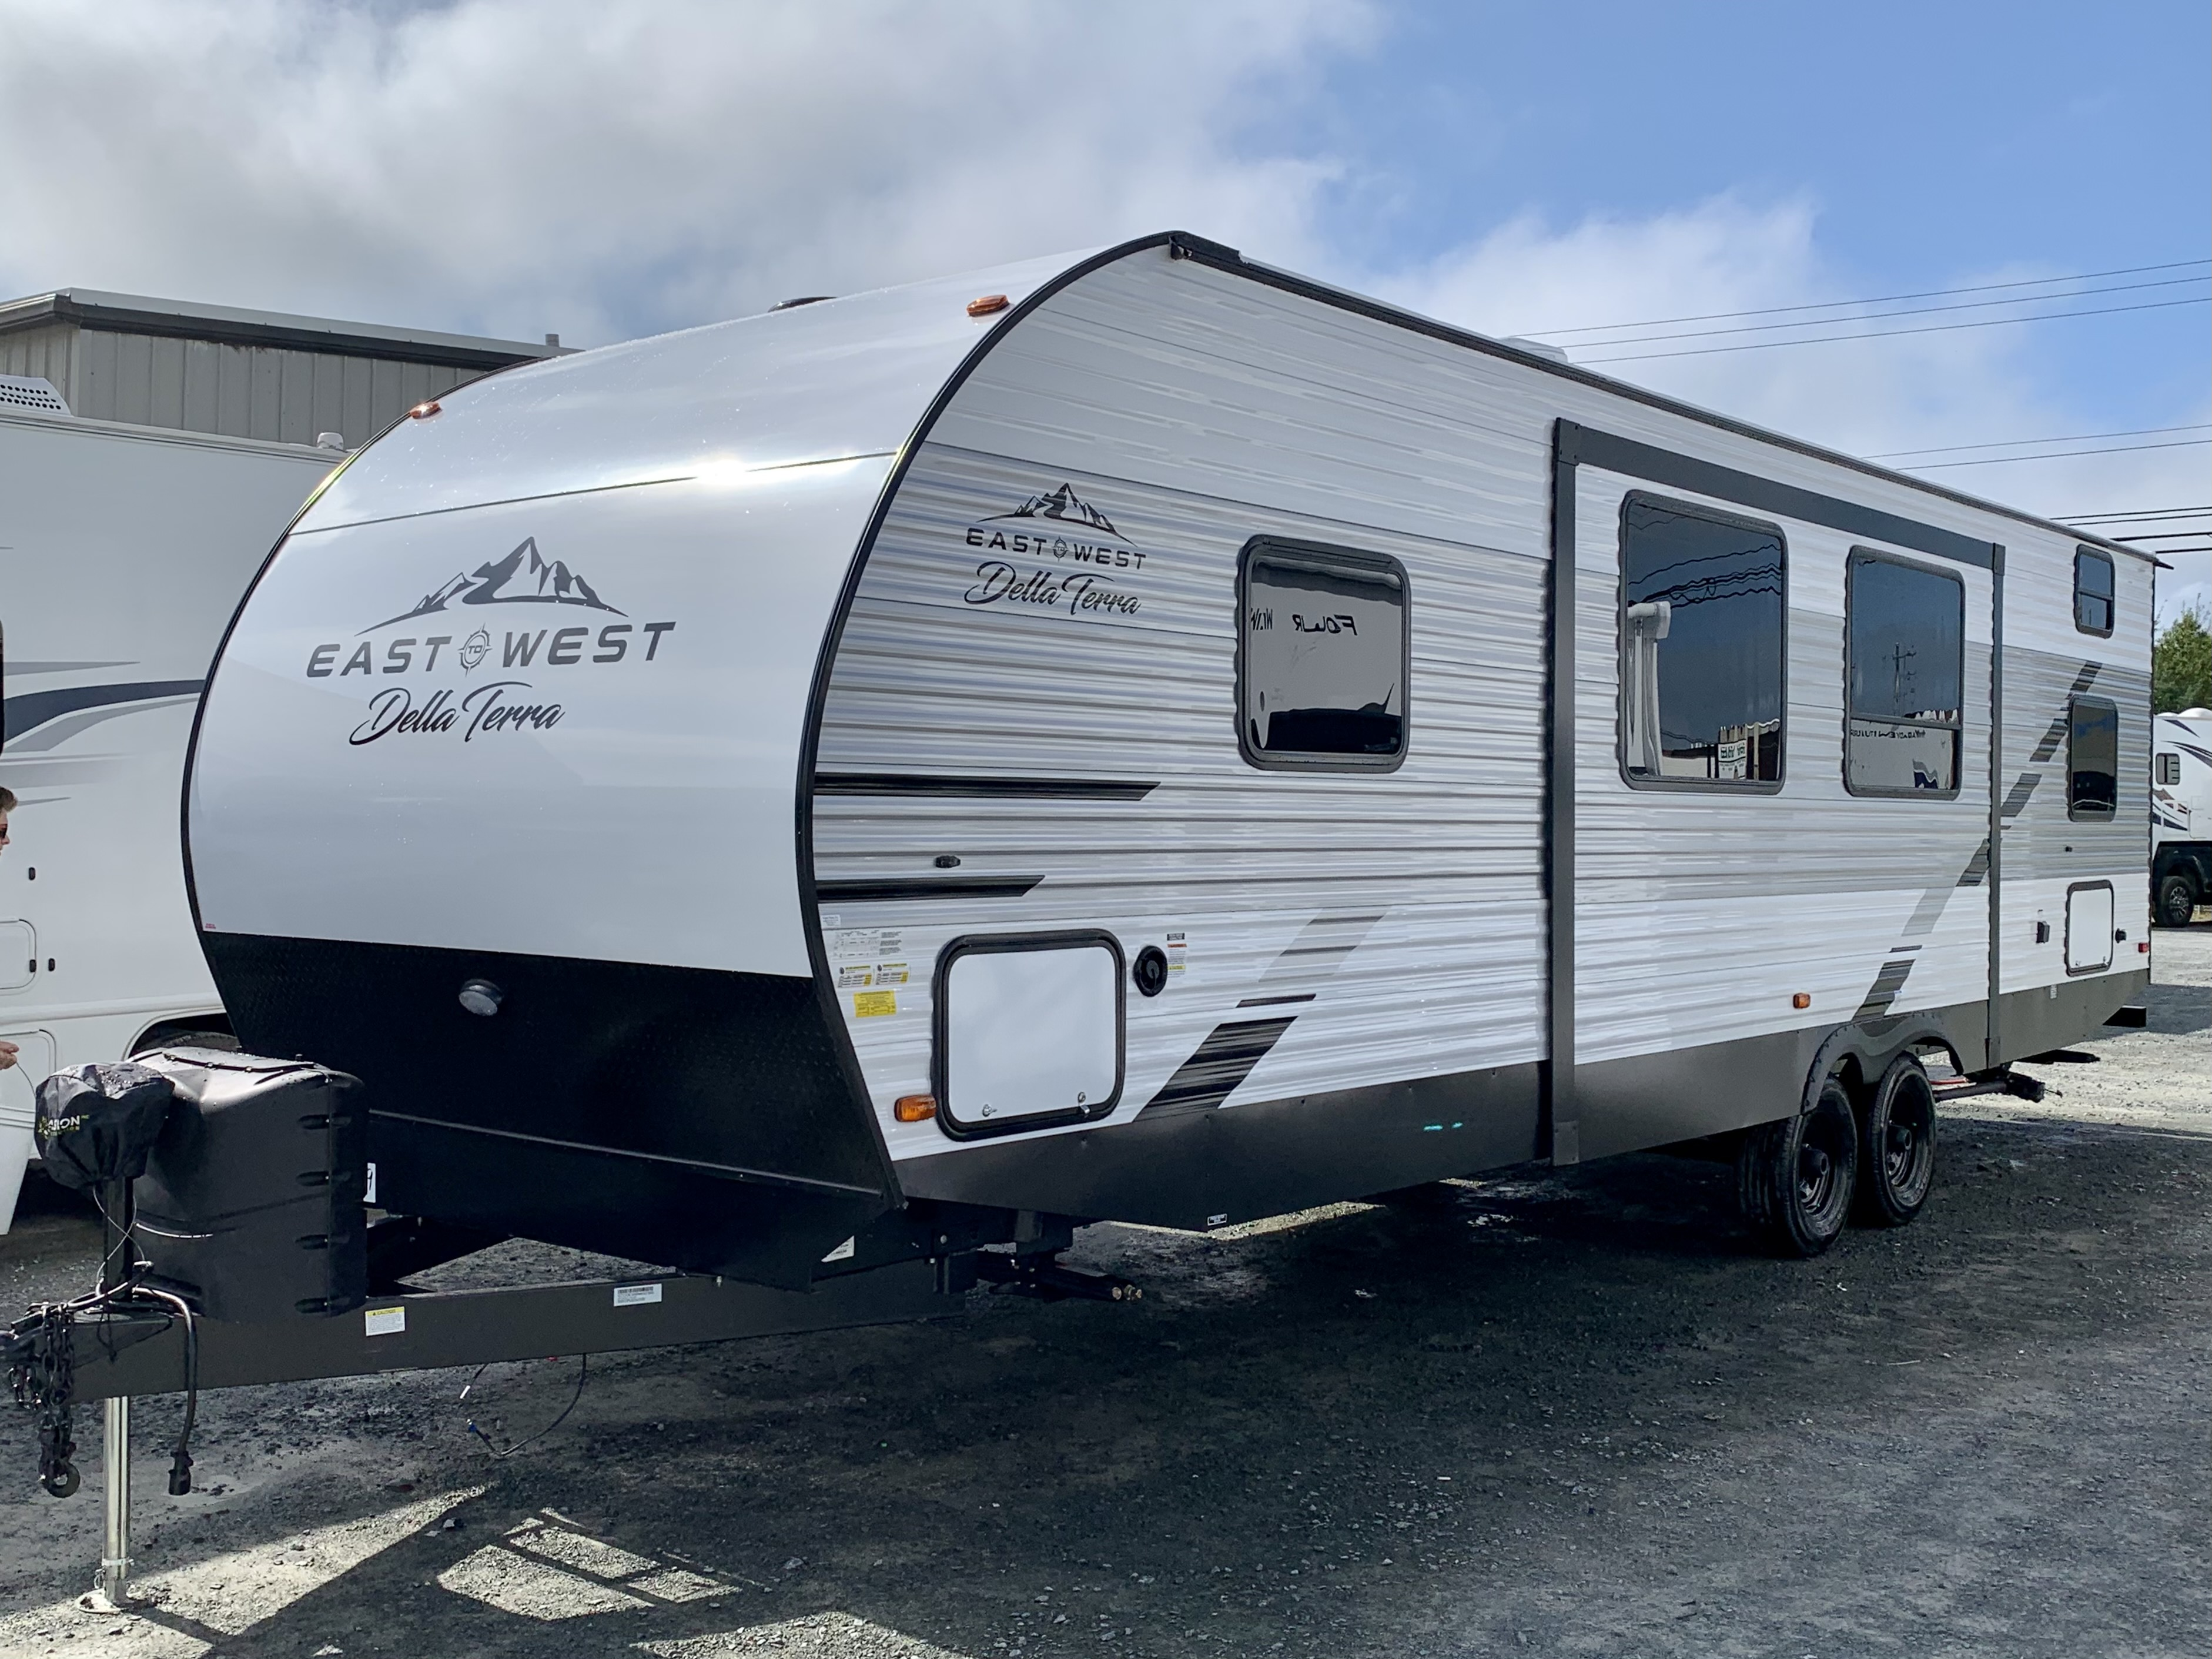 2022 EAST TO WEST RV DELLA TERRA 271BH NEW TRAVEL TRAILER WITH BUNK BEDS FOR SALE HALIFAX NS